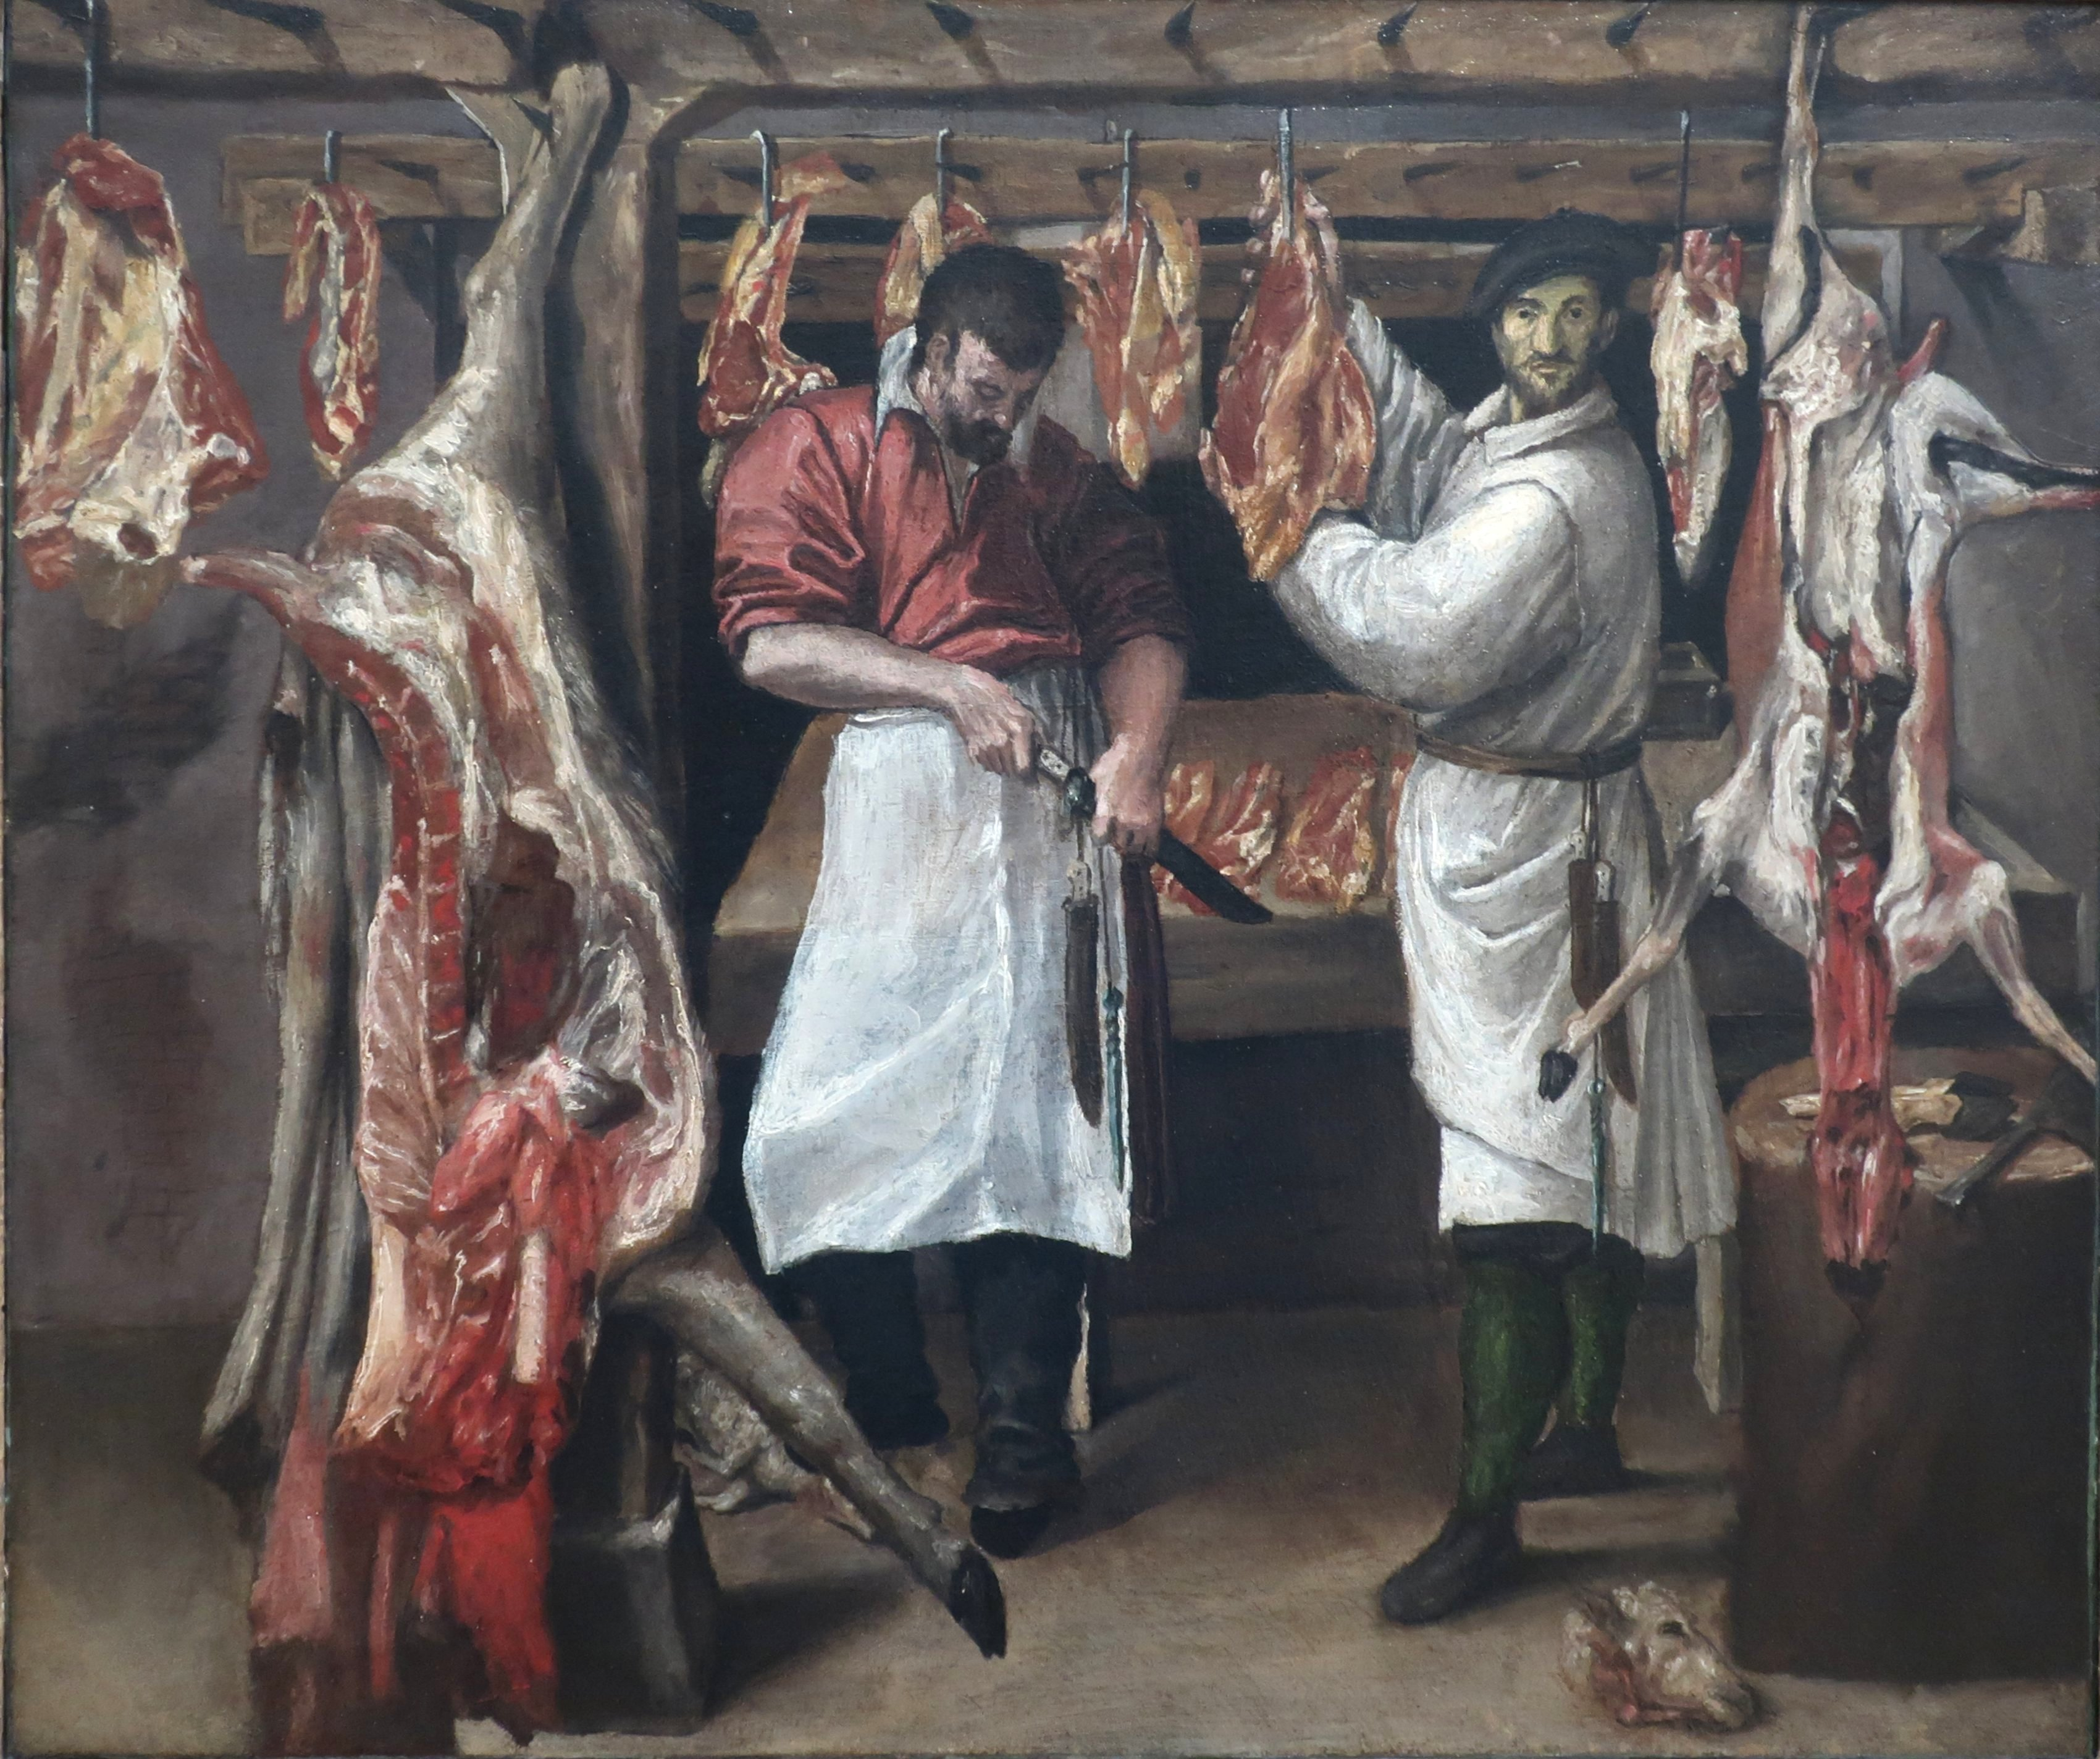 File:'The Butcher's Shop', oil on canvas painting by Annibale Carracci.jpg